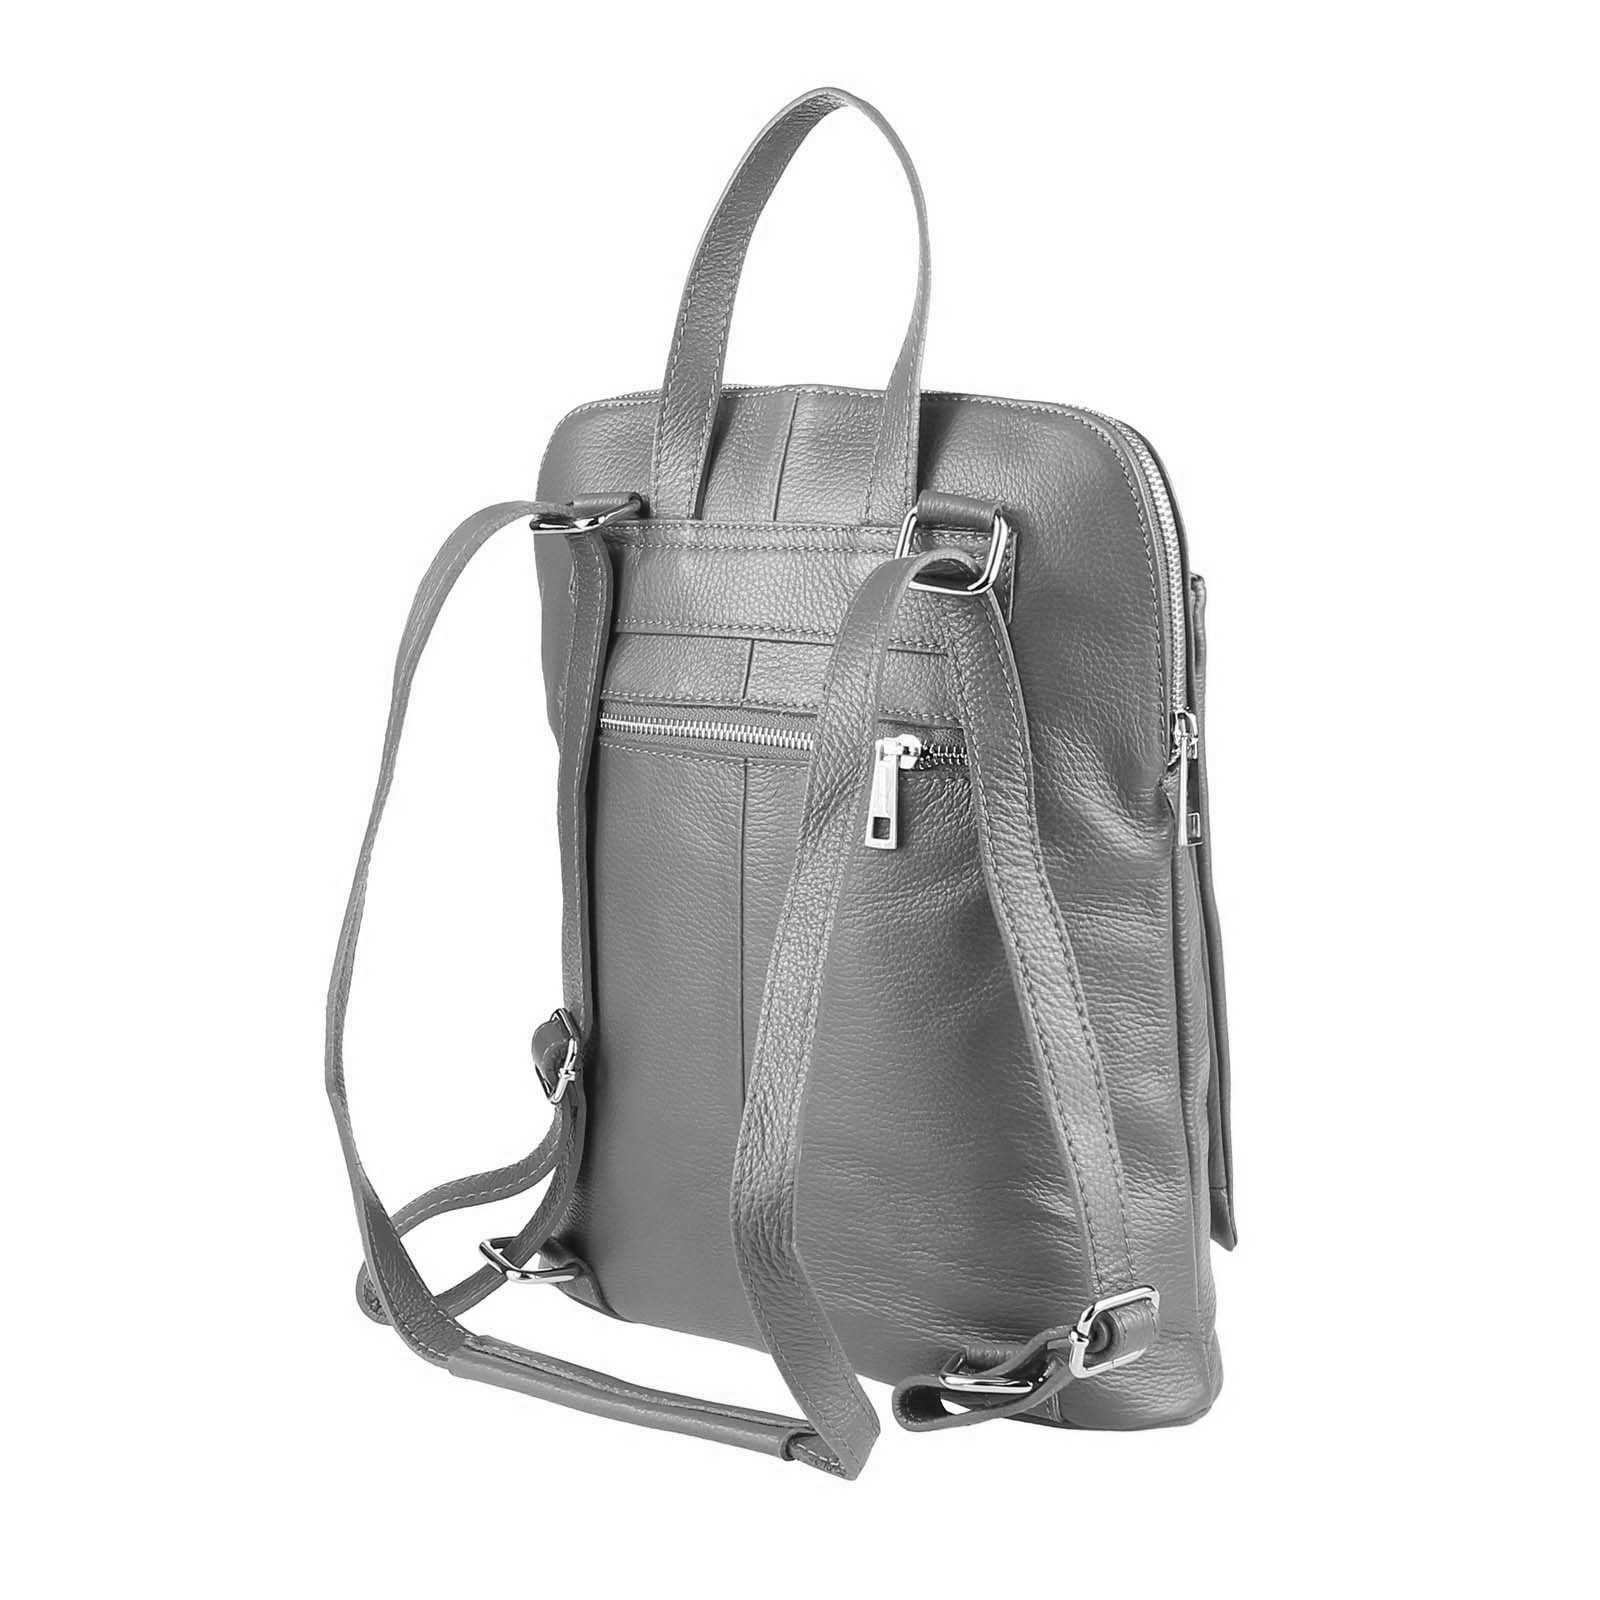 ITALy-DAMEN-LEDER-Reise-RUCKSACK-SchulterTasche-Shopper-Backpack-Ledertasche-BAG Indexbild 24